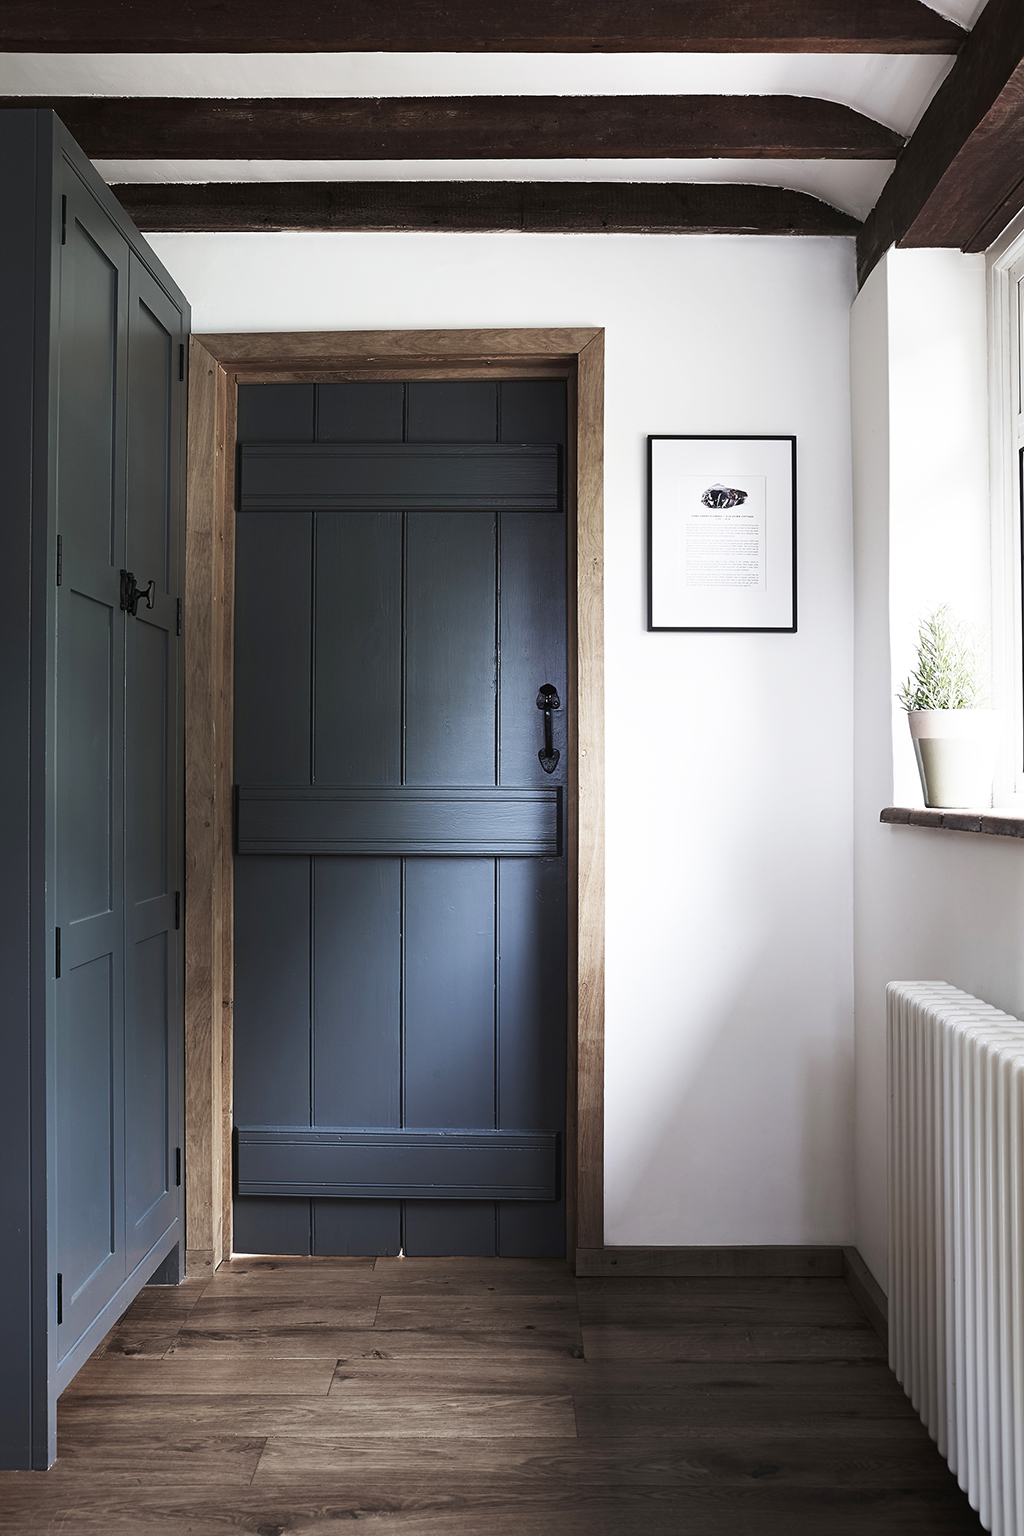 </p> <p>Find your ideal home design pro on designfor-me.com - get matched and see who's interested in your home project. Click image to see more inspiration from our design pros</p> <p>Design by Tamsin, interior designer from East Hampshire, South East</p> <p> #interiordesign #interiors #homedecor #homeinspiration #barnconversions #hallways #hallwaydesign #hallwayinspiration #hallwayideas #hallwaydesignideas #architecturedetails </p> <p>